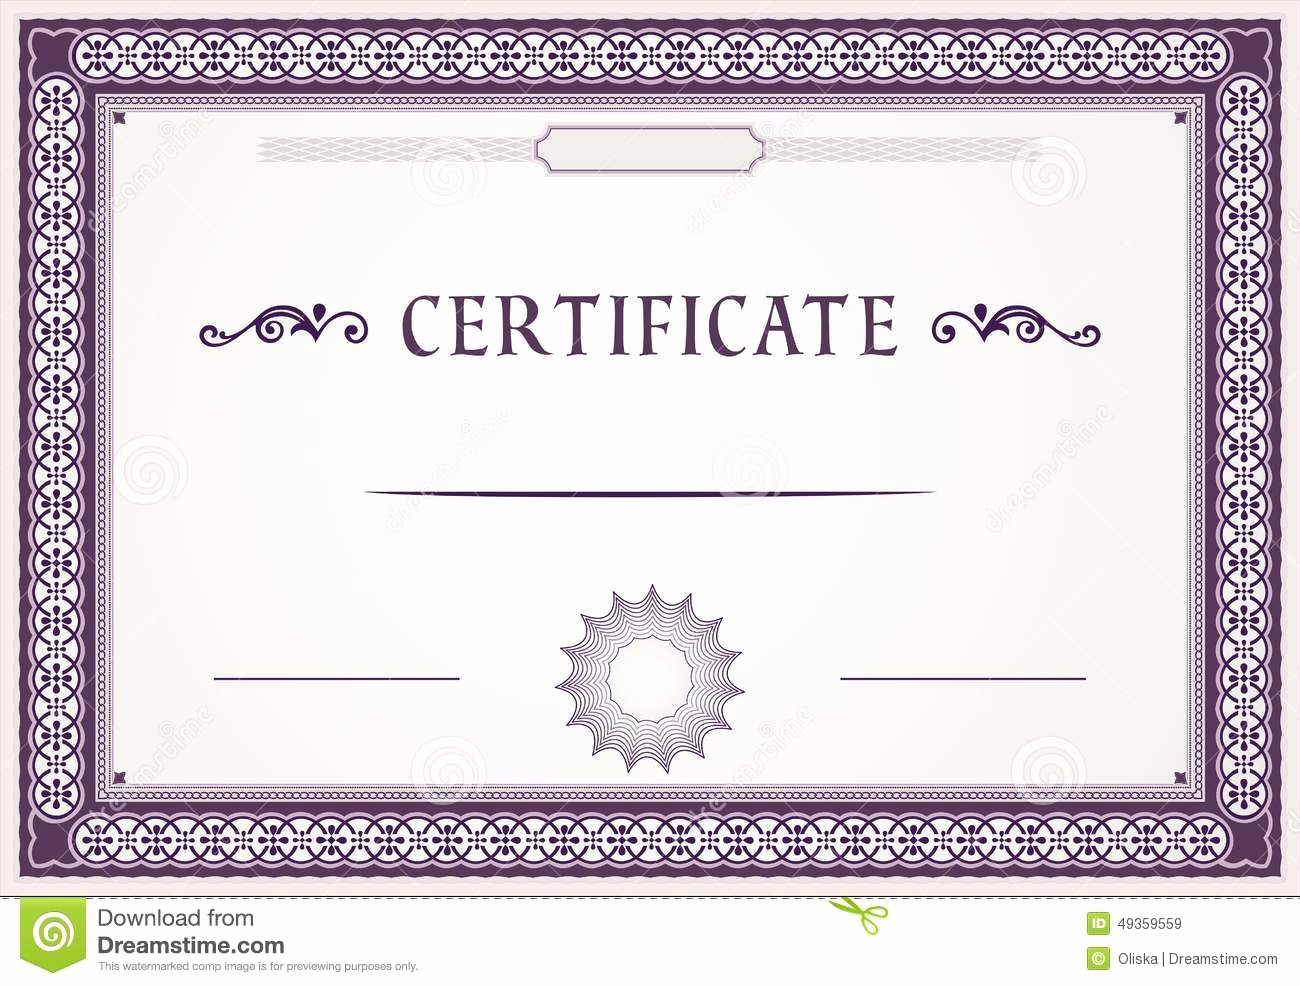 Certificate Border Design Free Download New Certificate Design Stock Vector Image